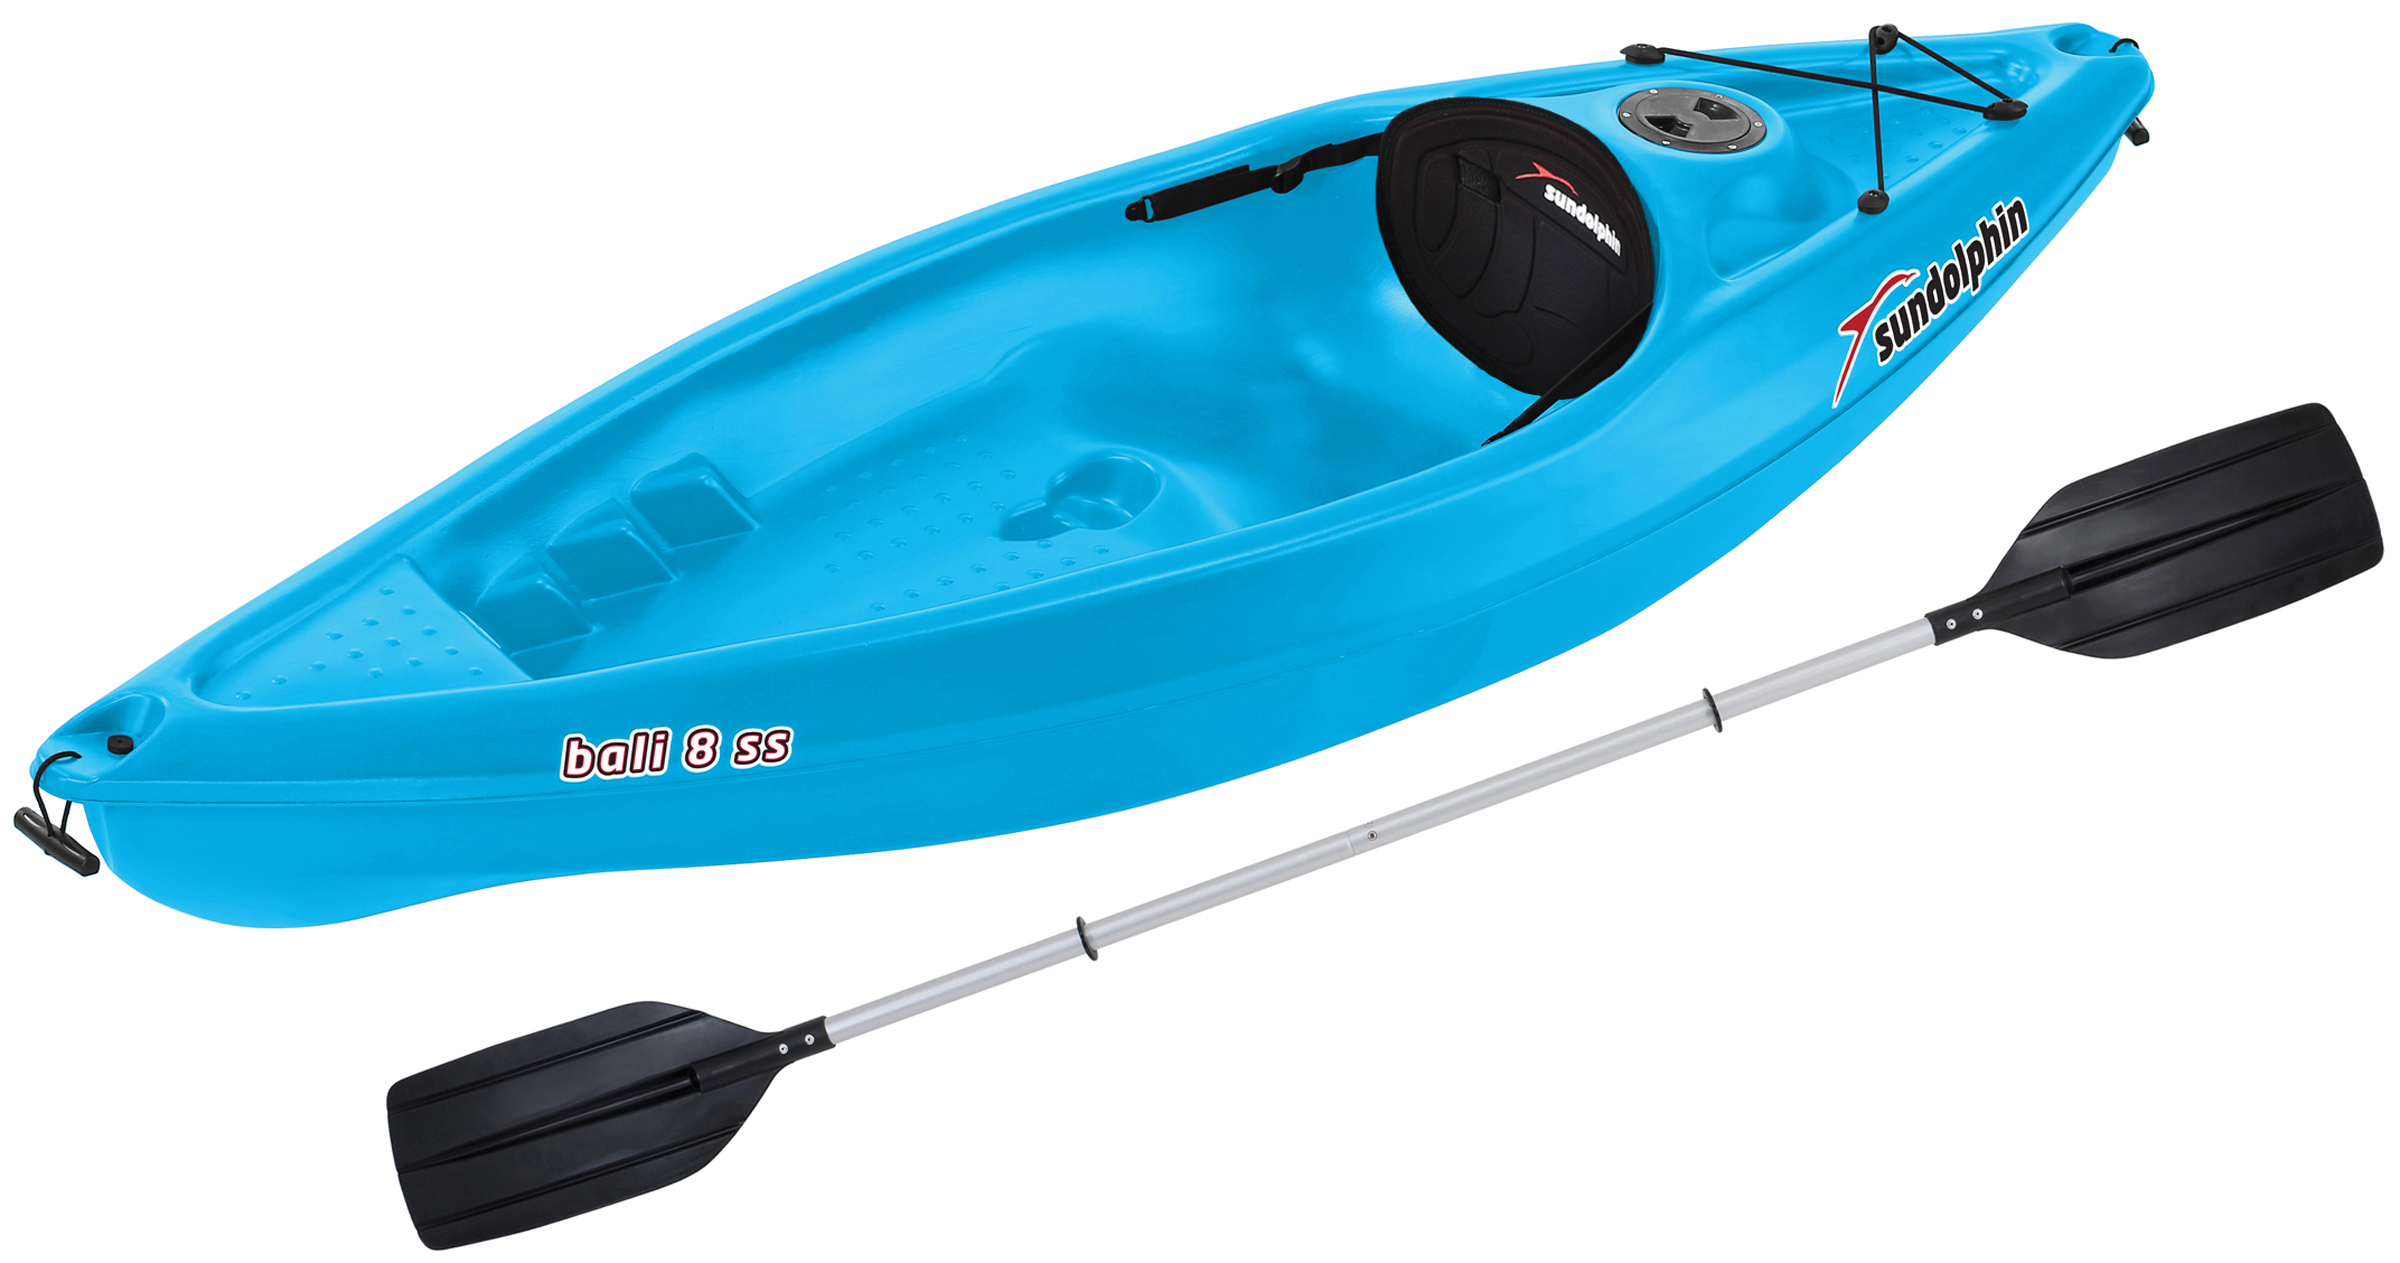 Sun Dolphin Bali 8' Sit-In Kayak, Includes Paddle by KL Outdoor